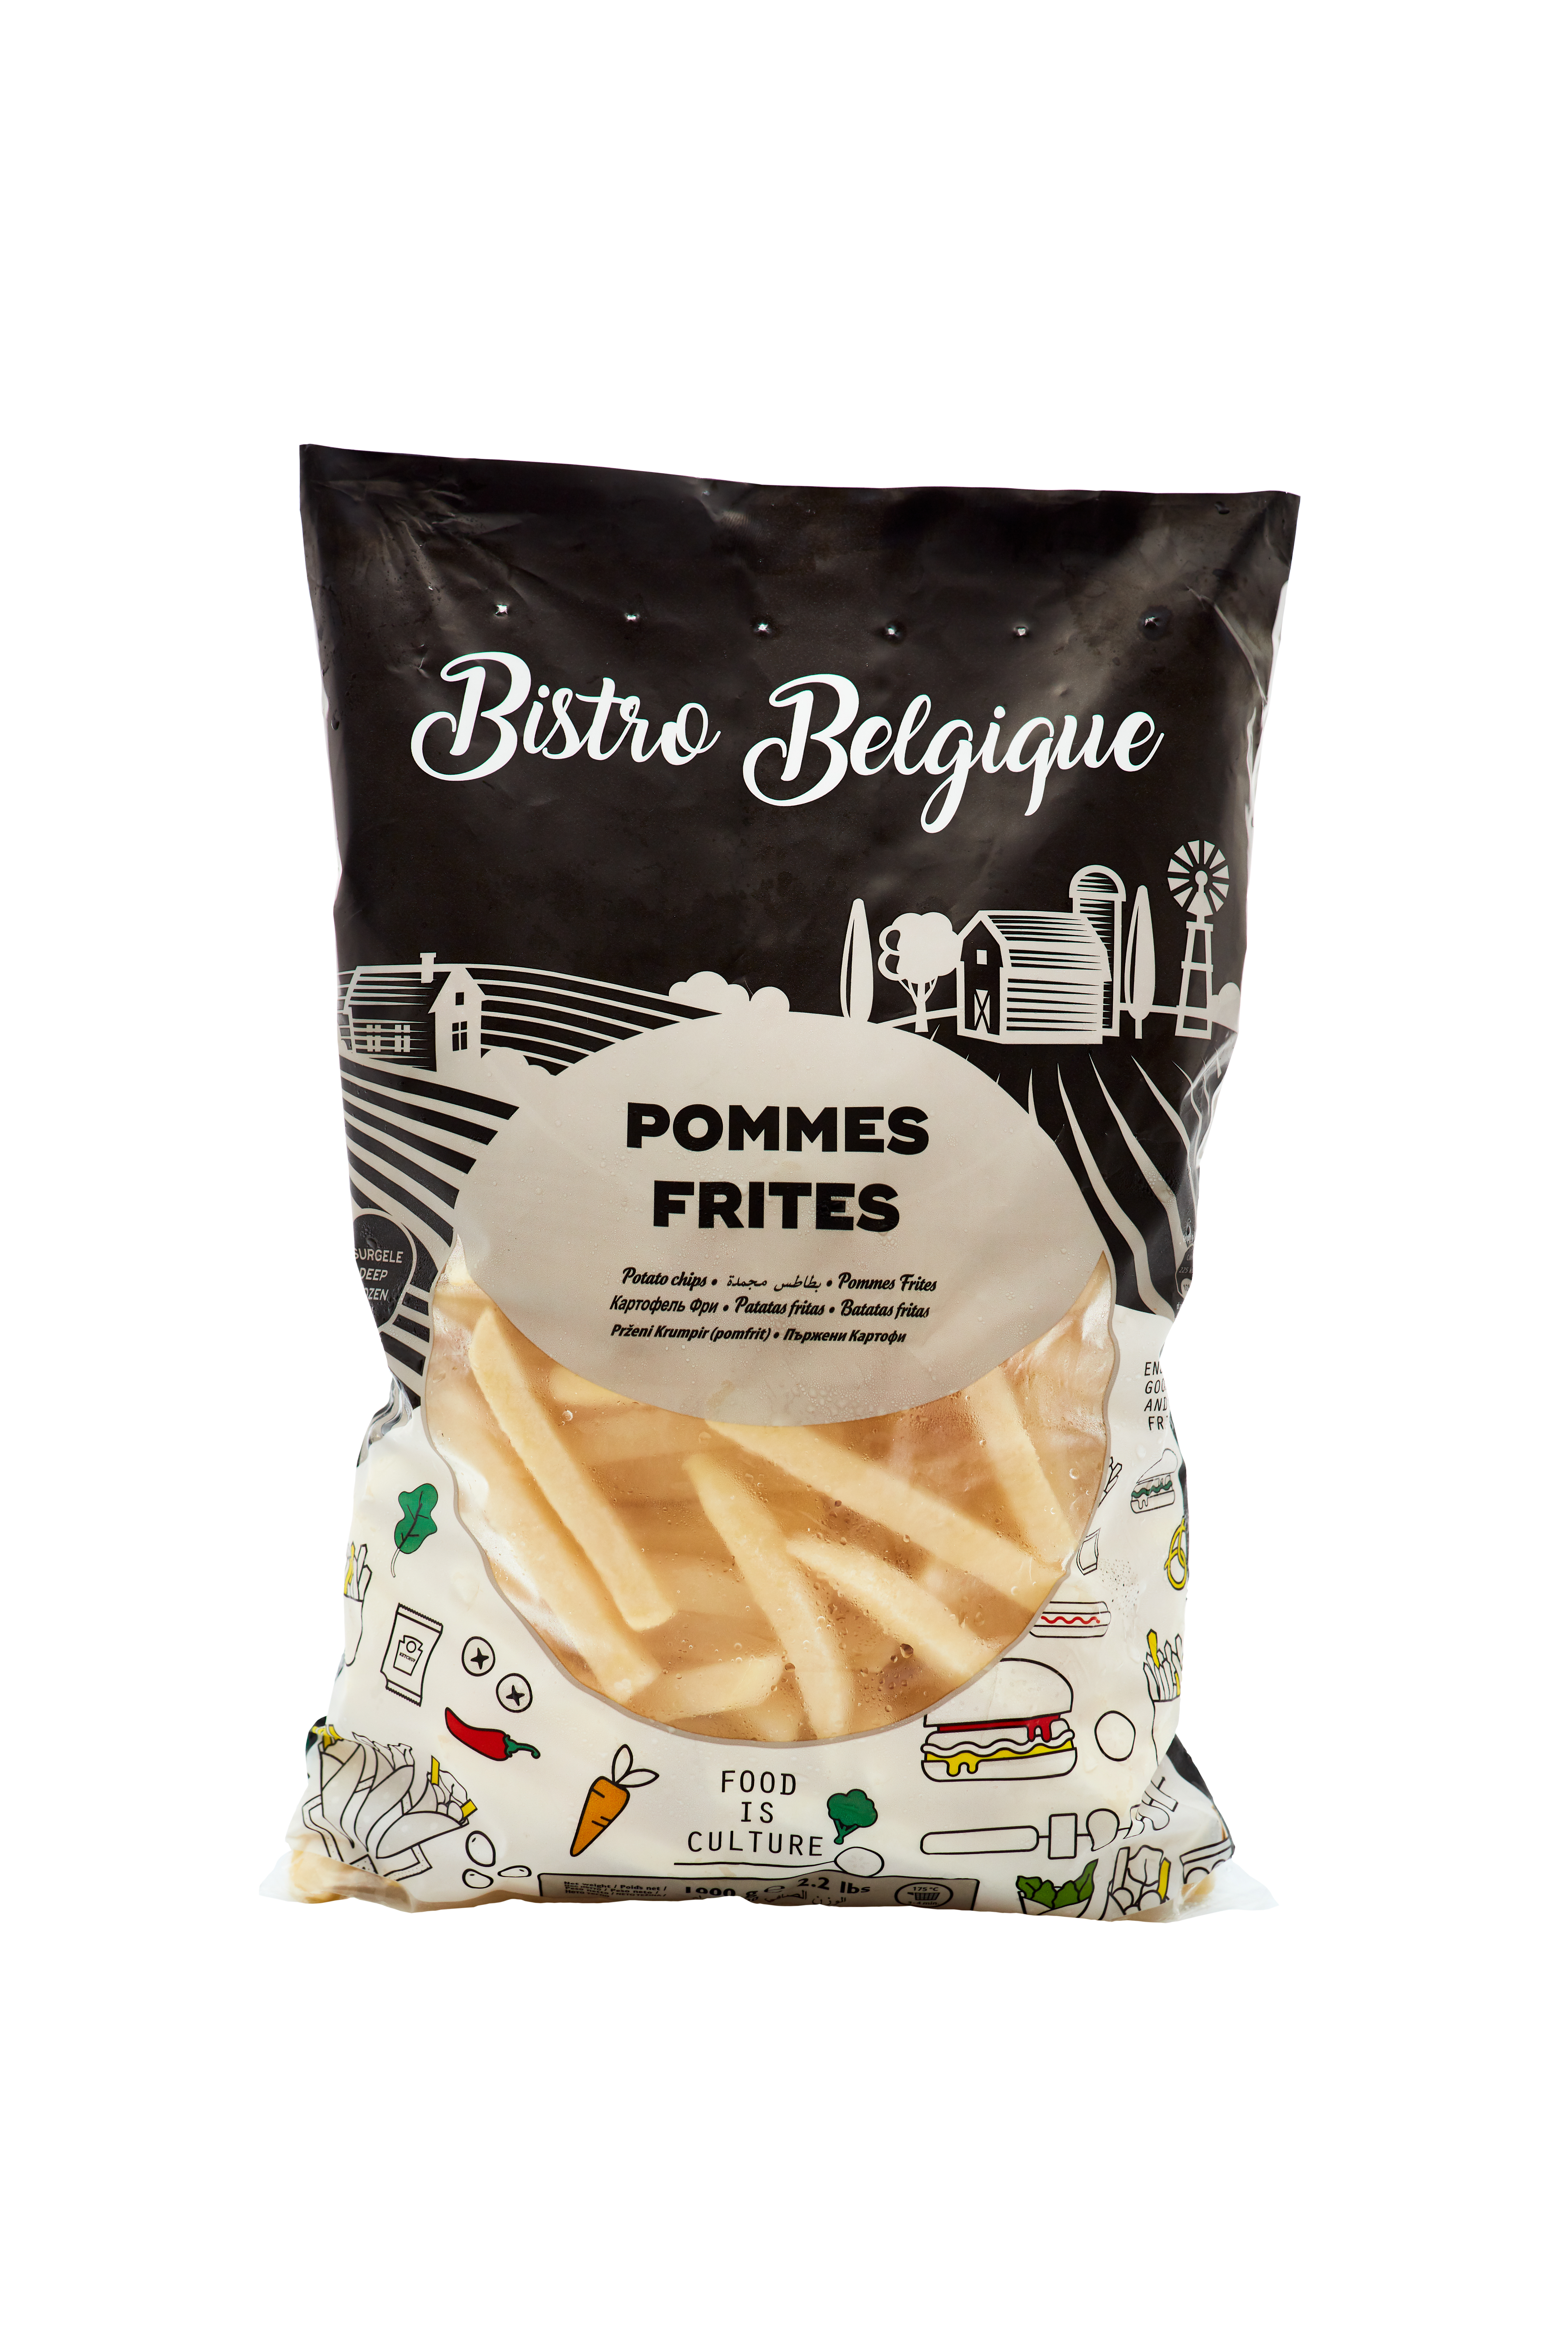 French fries 12x12mm Bistro Belgique brand packing